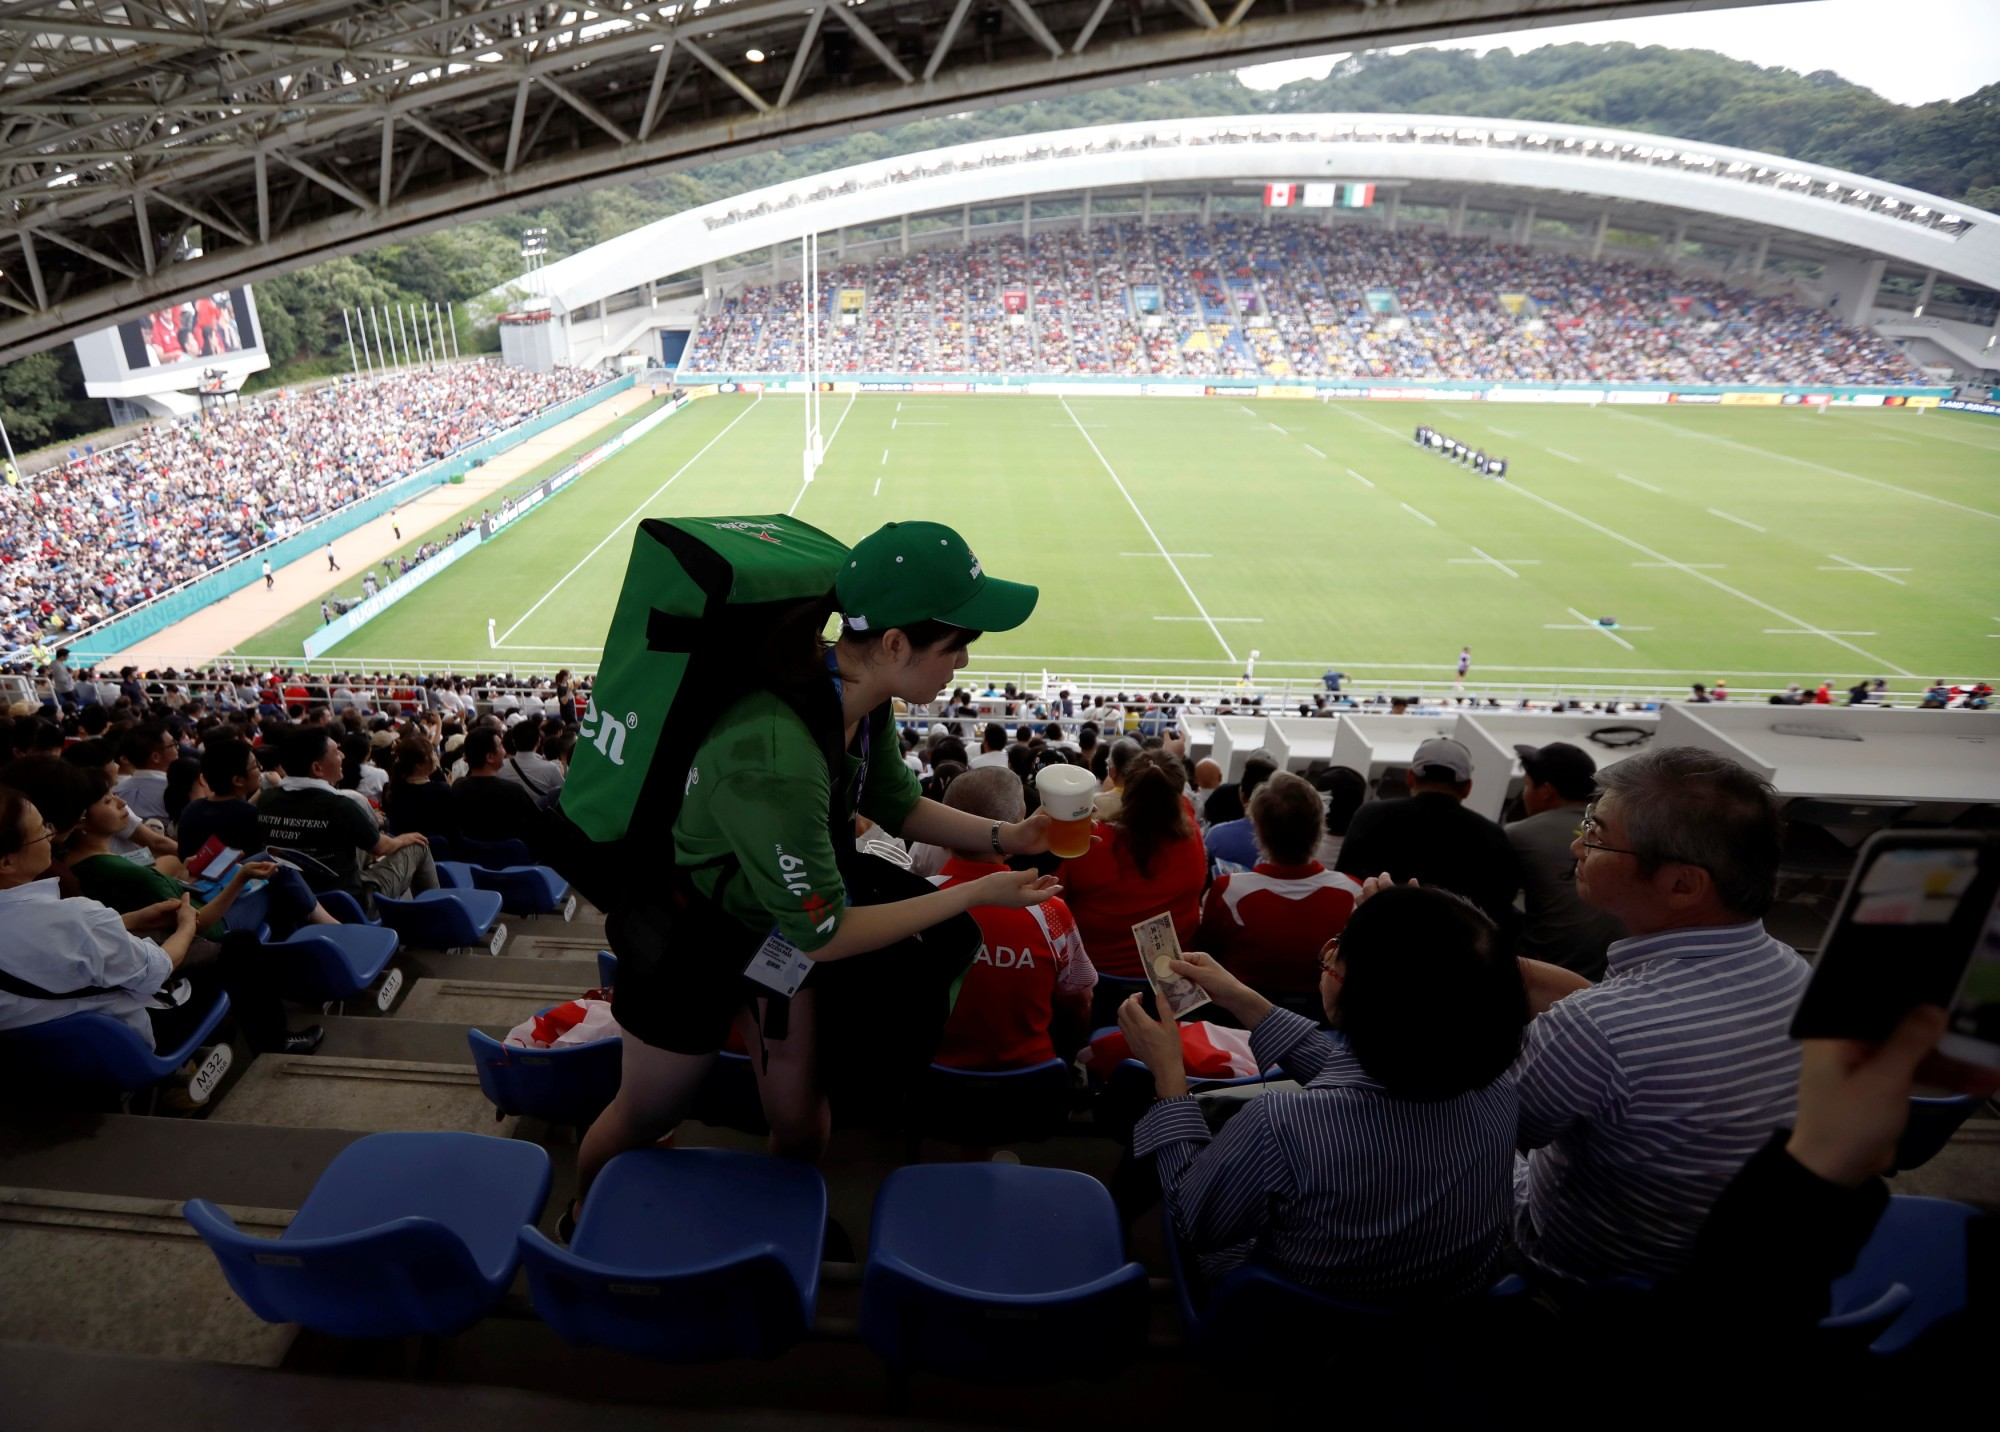 A beer vendor serves spectators at a Rugby World Cup match between Italy and Canada at Fukuoka Hakatanomori Stadium on Thursday. Wednesday's upcoming match between France and the United States could possibly be canceled as a result of Typhoon Mitag. | REUTERS